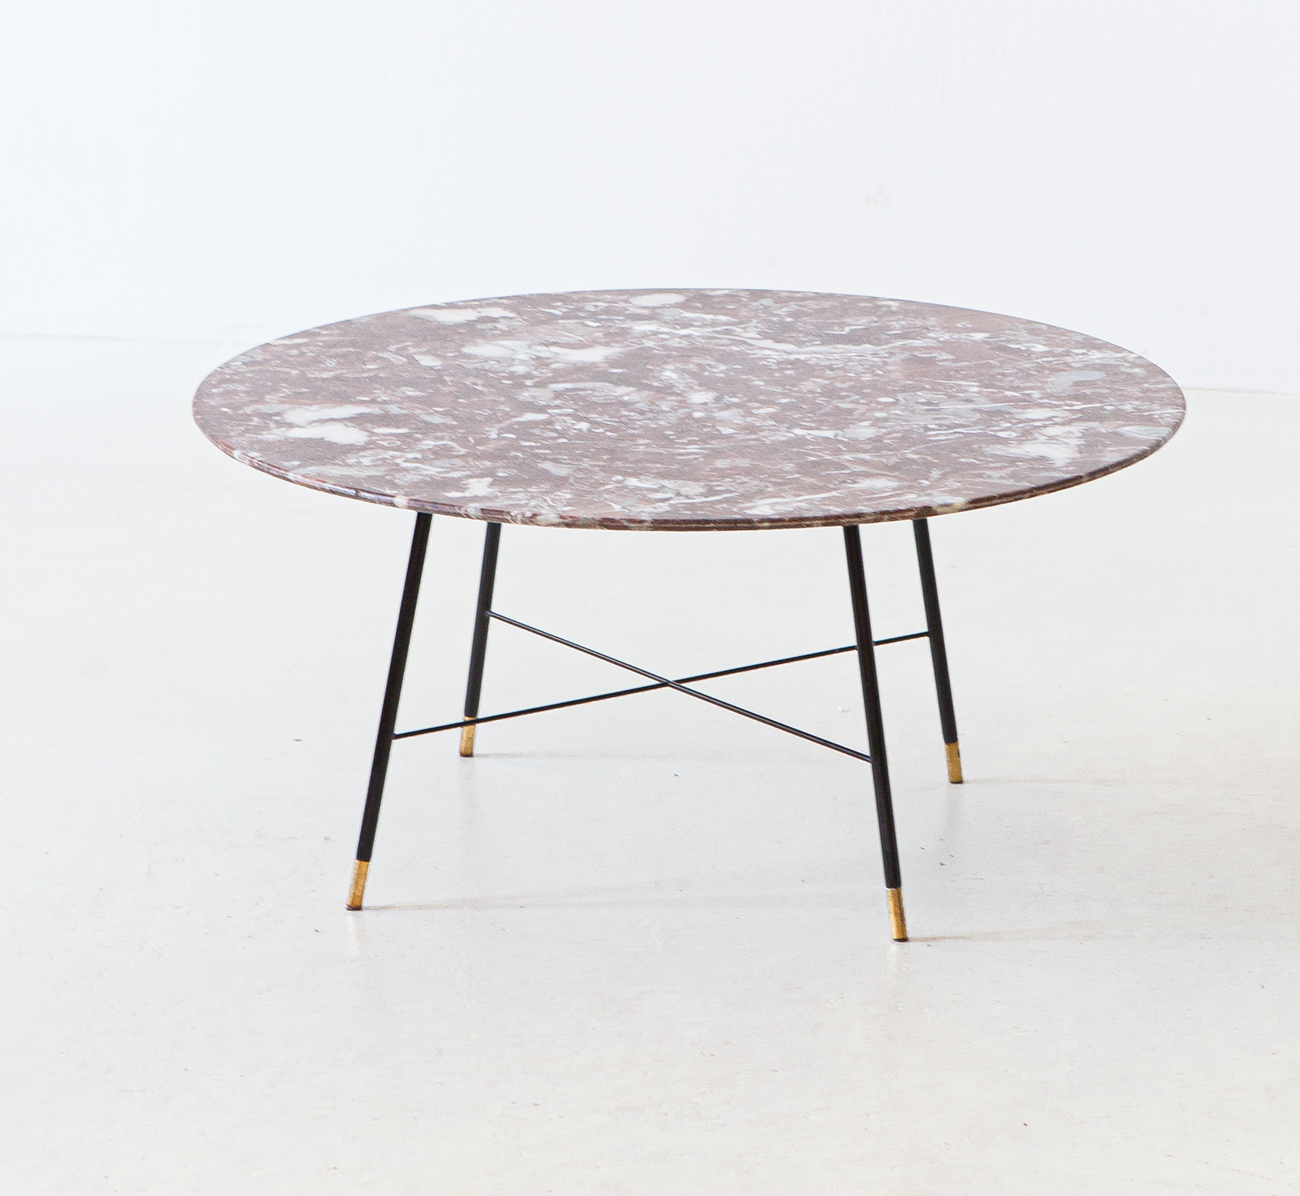 1950s-italian-marble-top-round-low-table-2b-t85